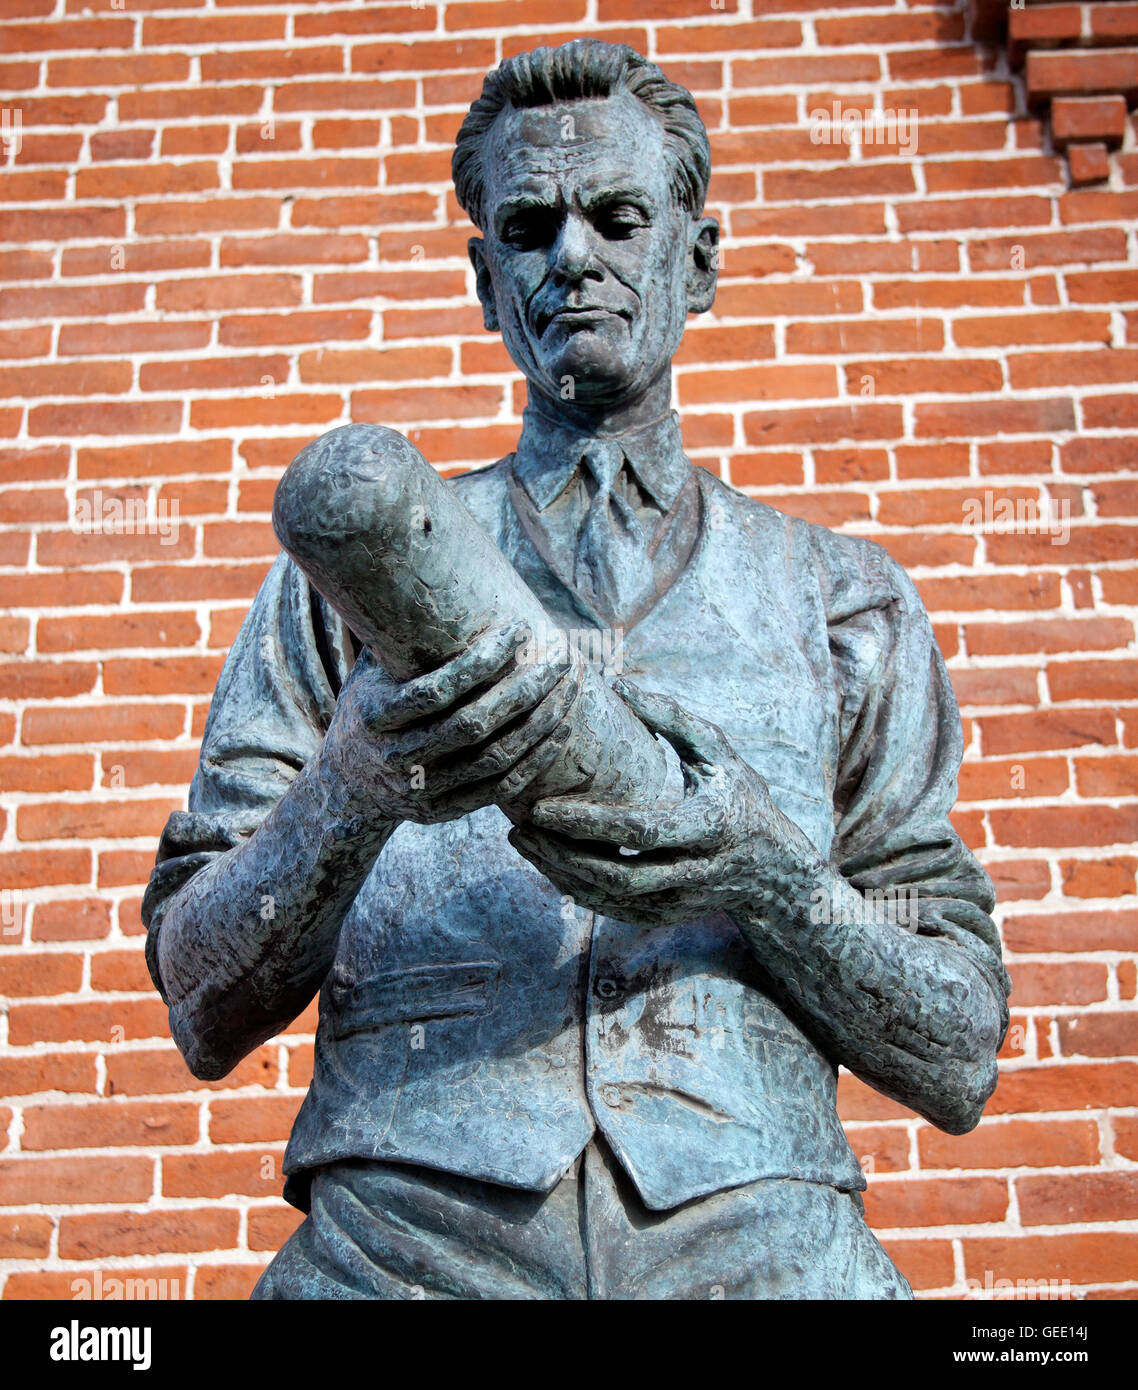 Statue of Philo Farnsworth the father of Television born in Beaver Utah - Stock Image